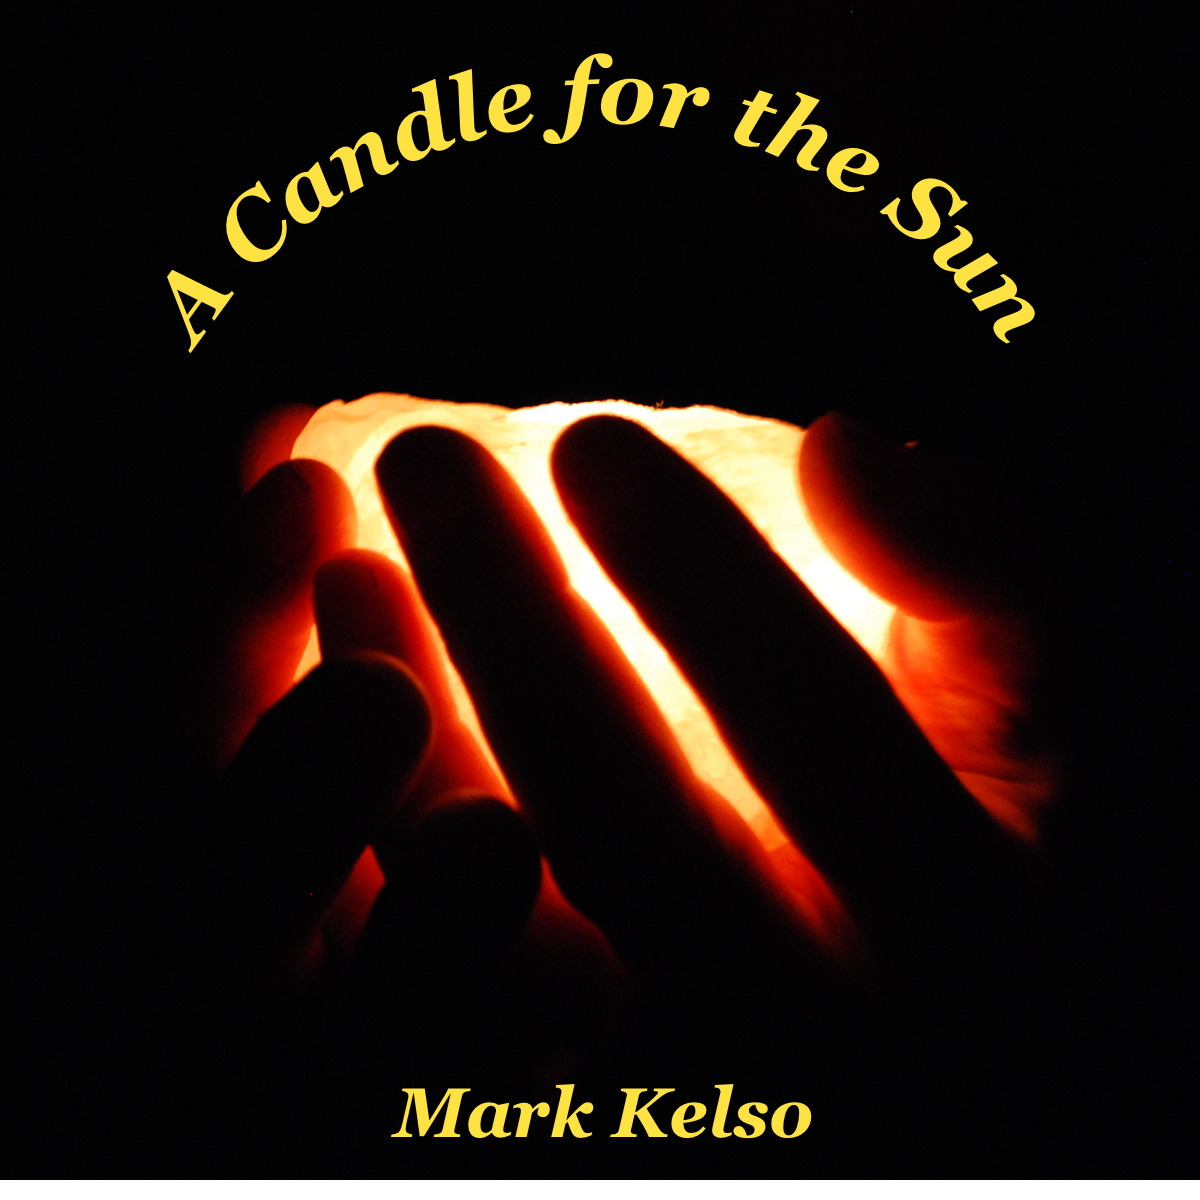 /userfiles/Candle for the Sun_CD4(1).jpg